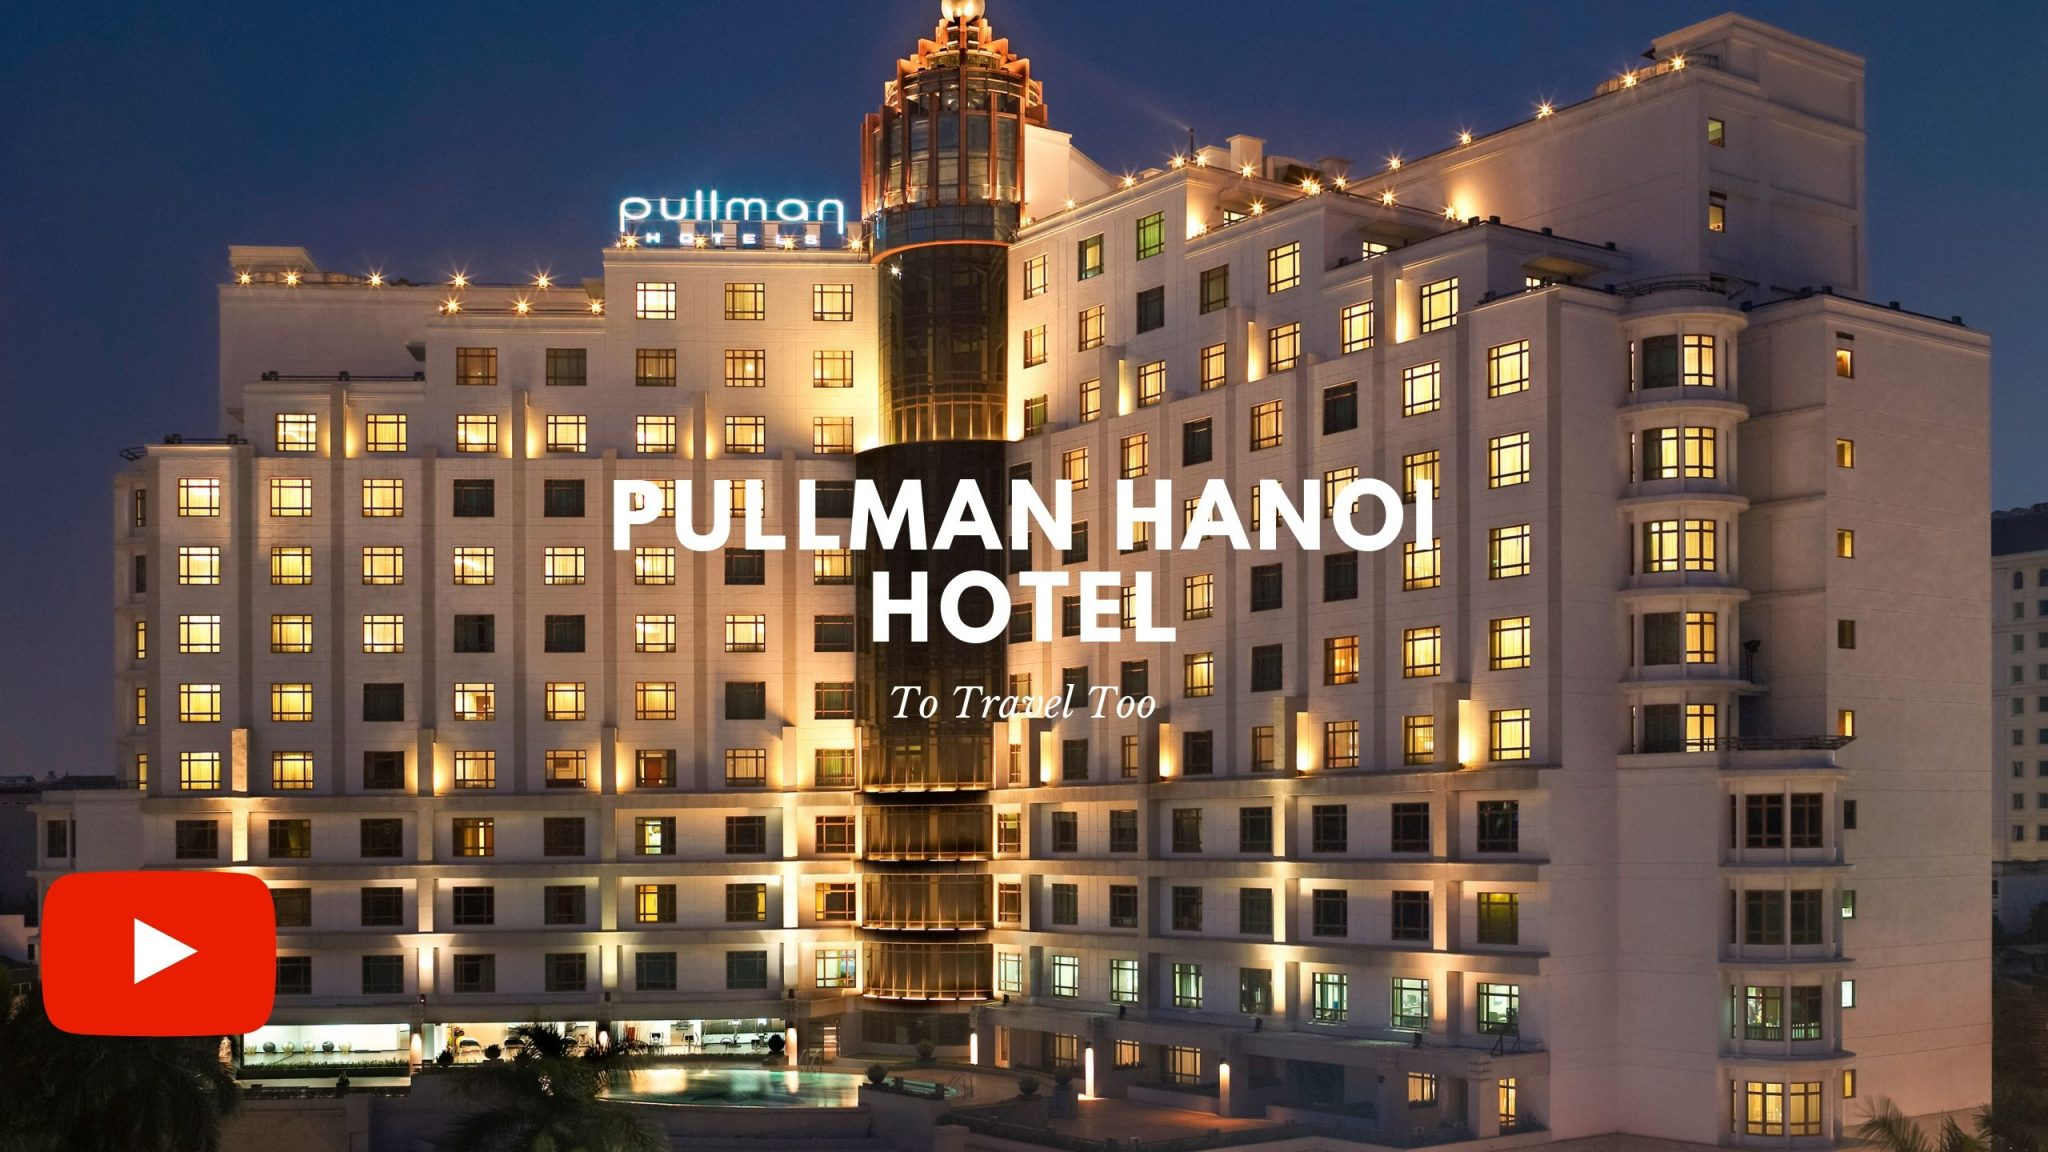 Video on the Pullman Hanoi Hotel